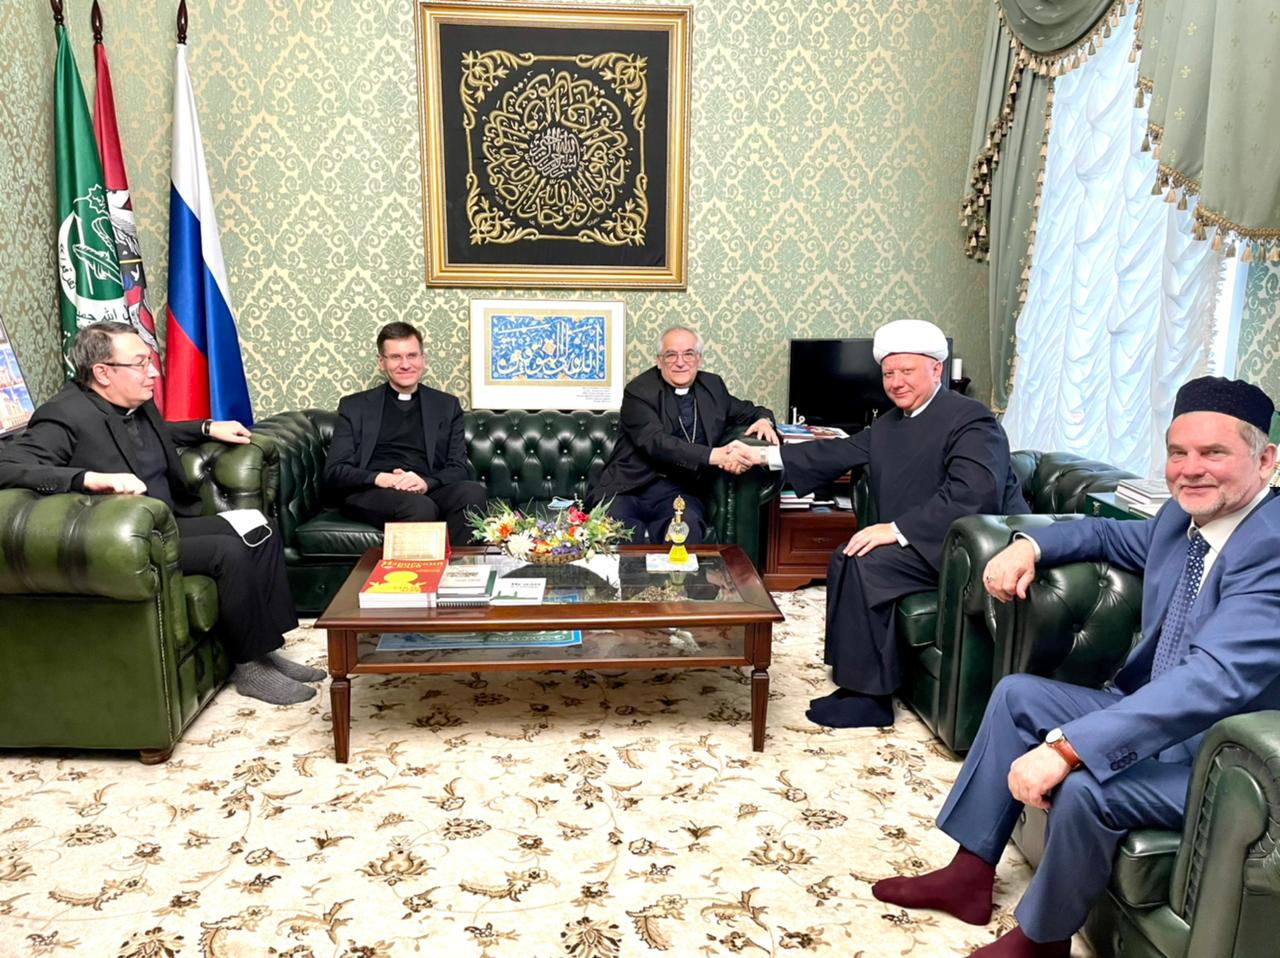 Albir Hazrat Krganov meets with Apostolic Nuncio to the Russian Federation.